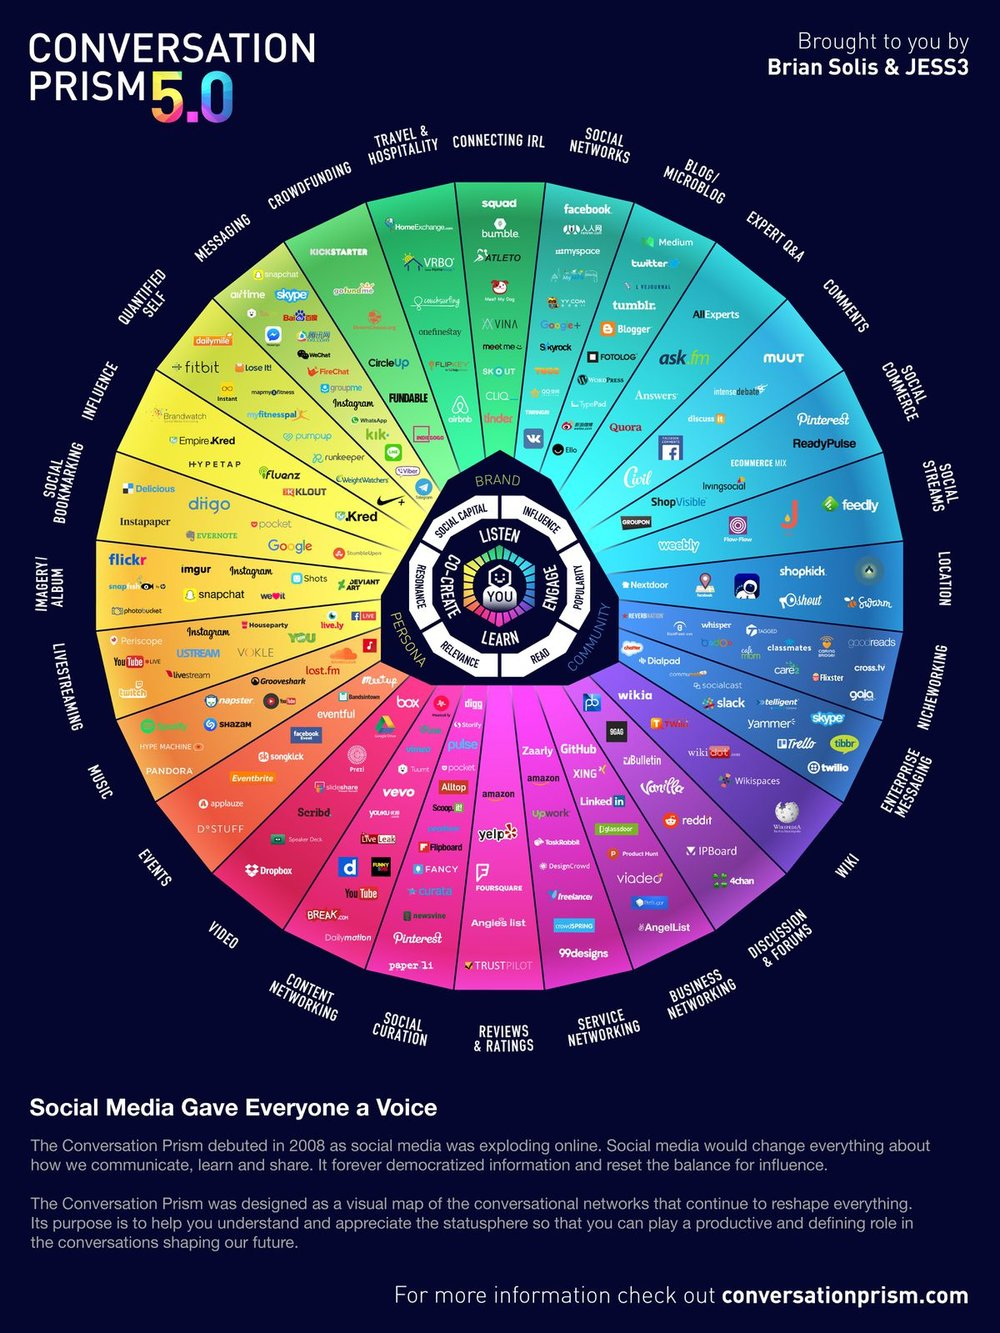 The prism lends itself to tracking history, but also helping narrow down what sites your consumer will be using and for what reasons. - Courtesy of Conversation Prism 5.0